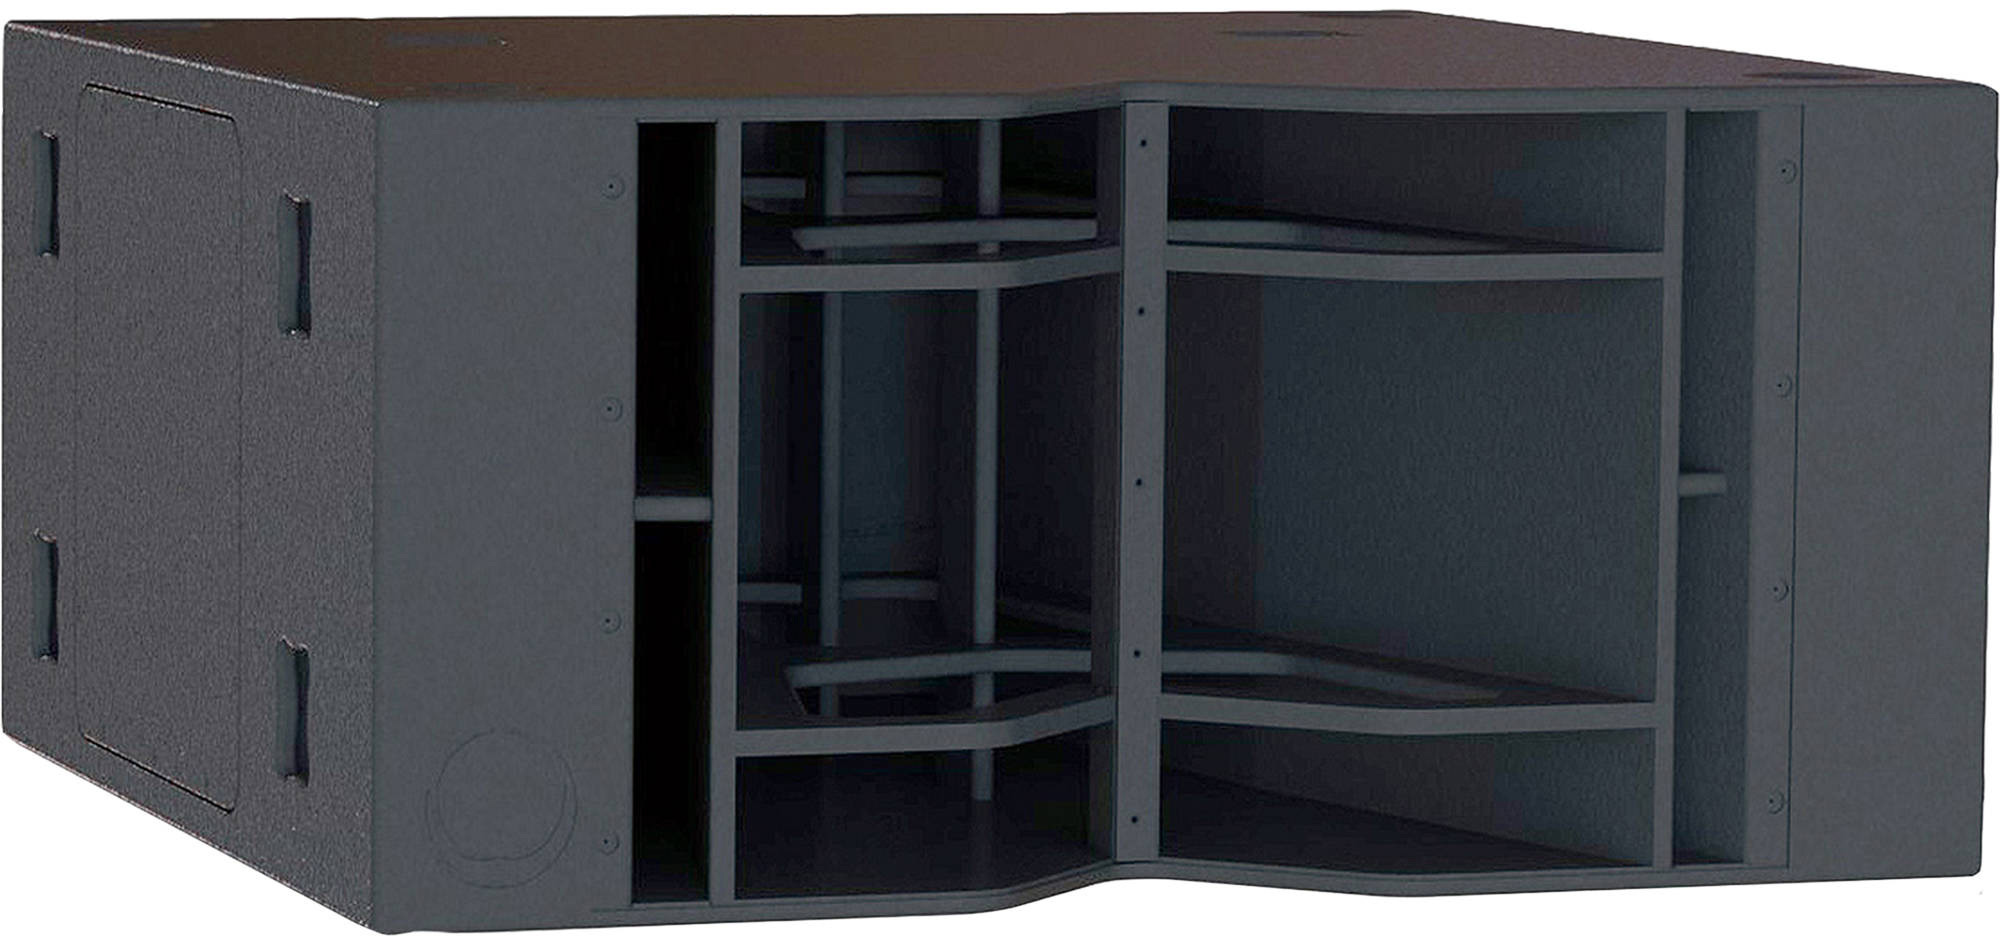 """Turbosound Flashline Series TFS-900B Dual 18"""" Horn Loaded Subwoofer for Touring Applications"""